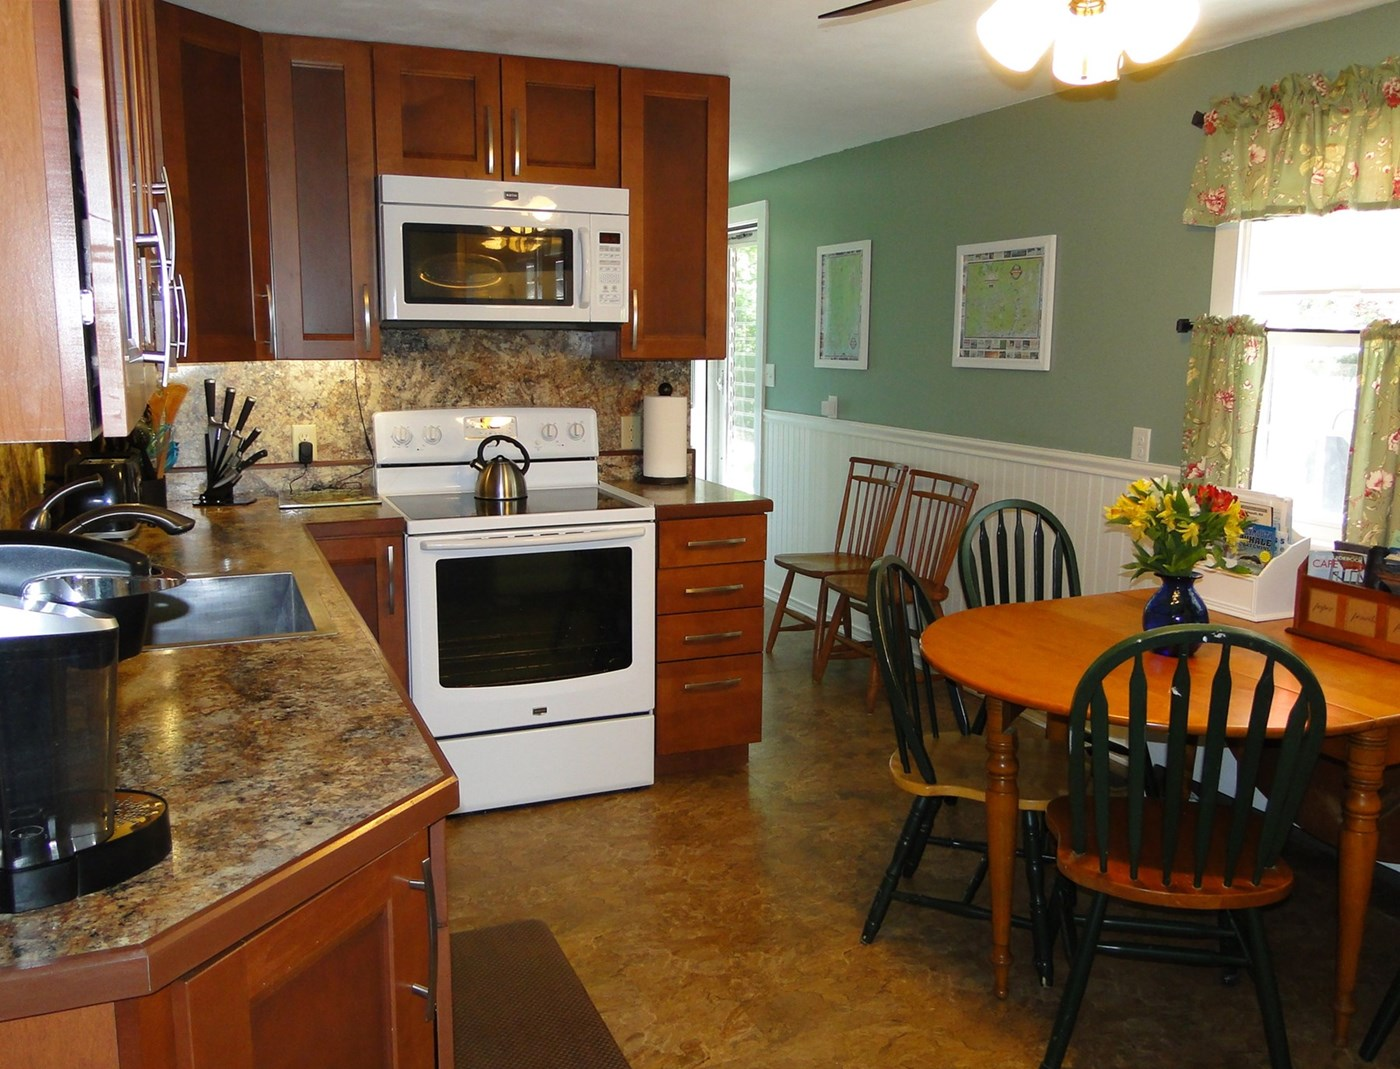 photos kitchen cabinets falmouth vacation rental home in cape cod ma 02536 200 24632